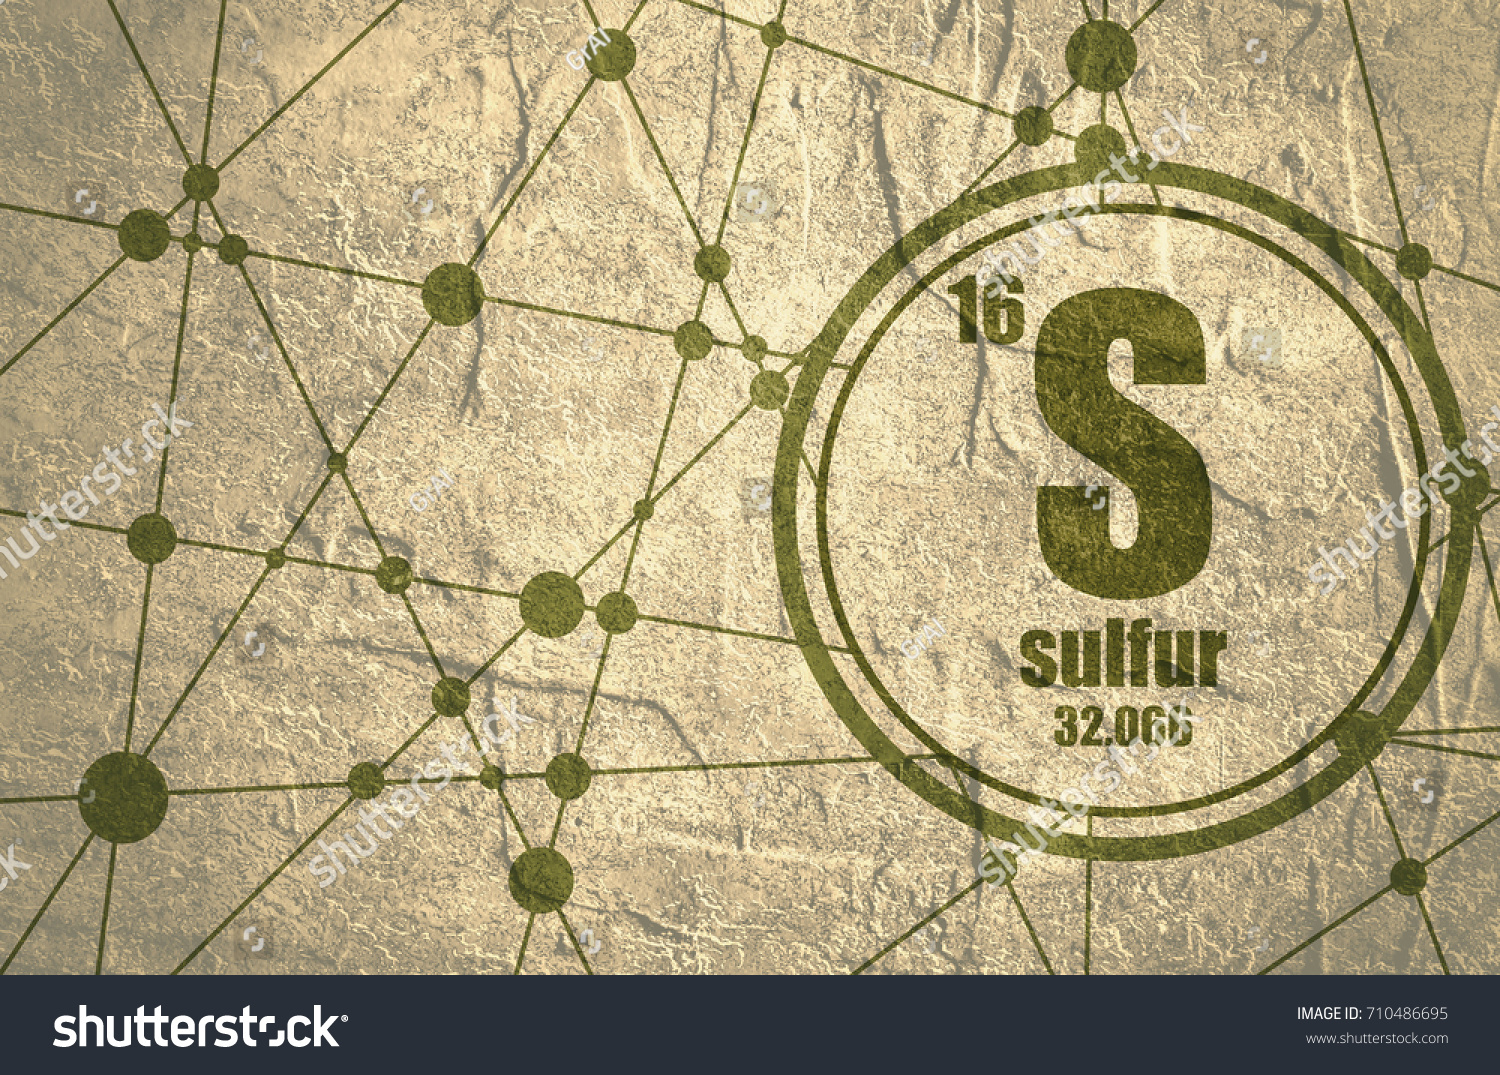 Sulfur chemical element sign atomic number stock illustration sulfur chemical element sign with atomic number and atomic weight chemical element of periodic urtaz Image collections